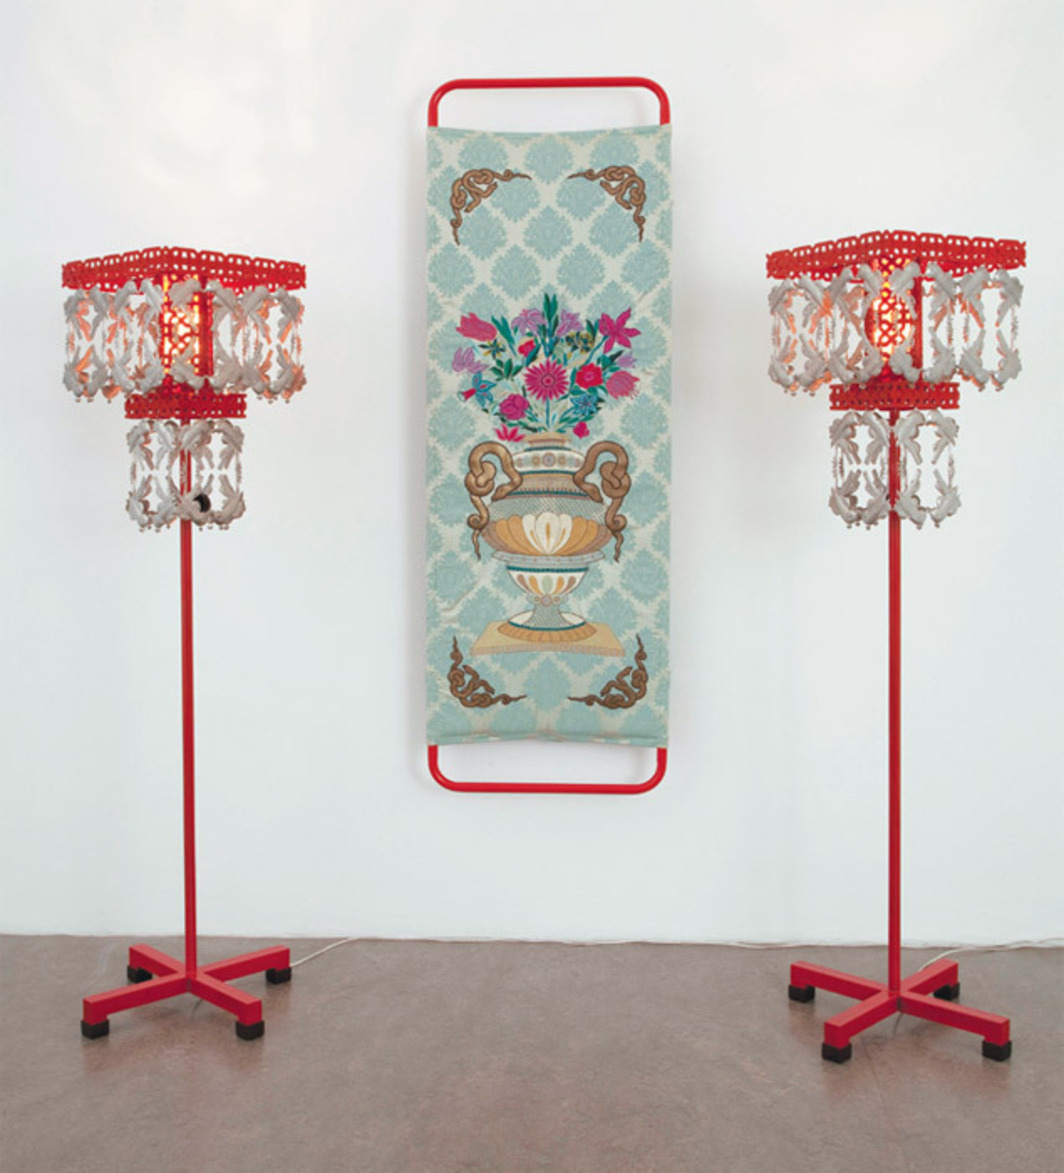 "Adeela Suleman, Prying in her richly decorated room I, 2012, embroidery on canvas, iron, paint, lamps, 89 1/2 x 78 3/4 x 33 1/2""."